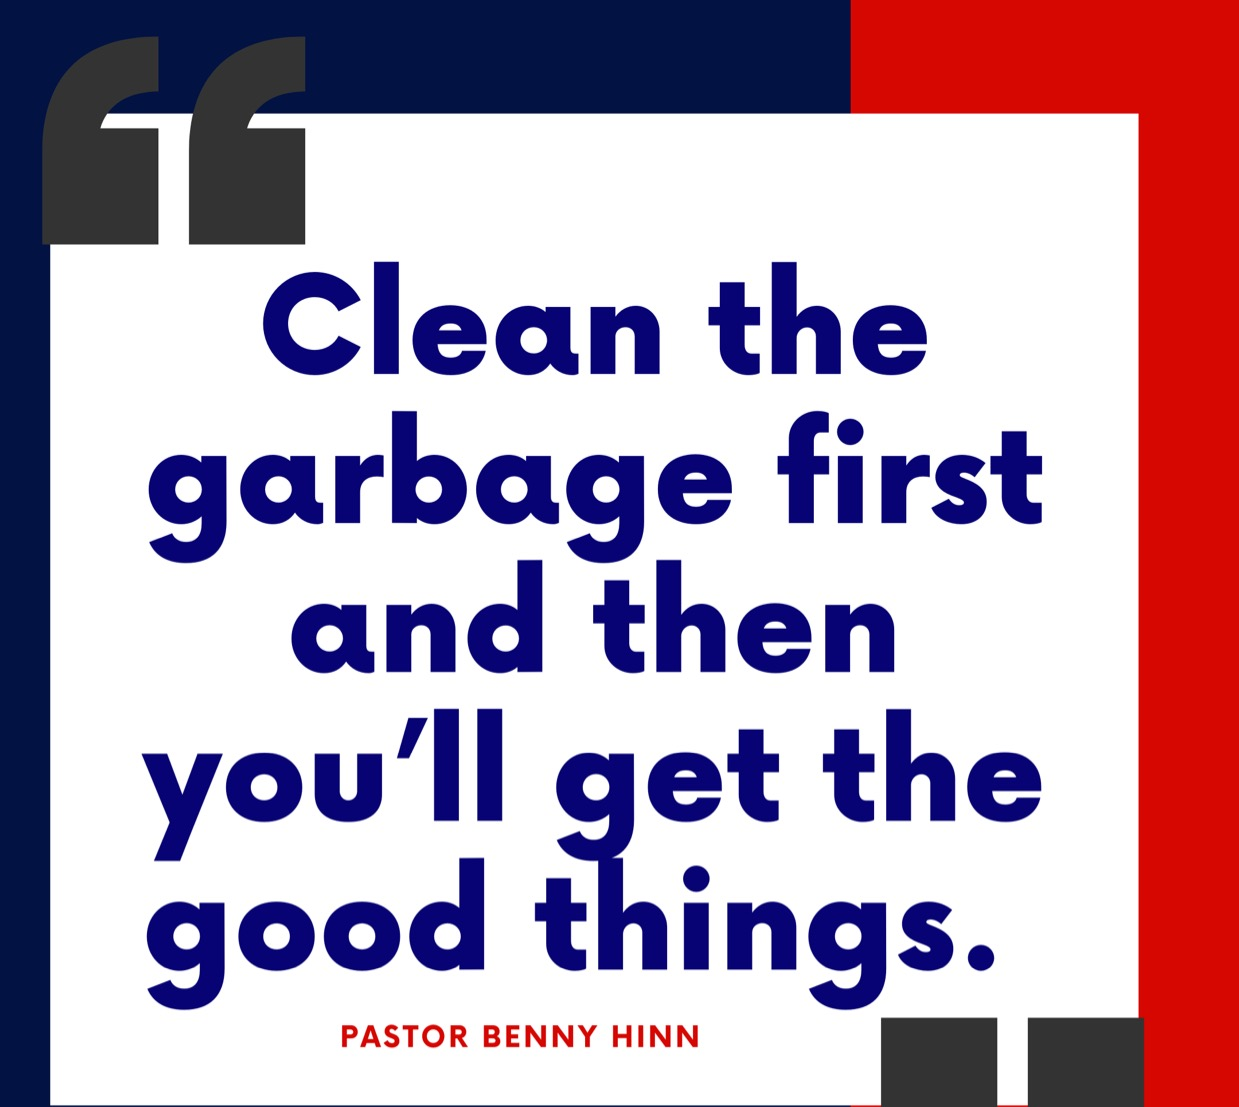 'Clean the garbage first and